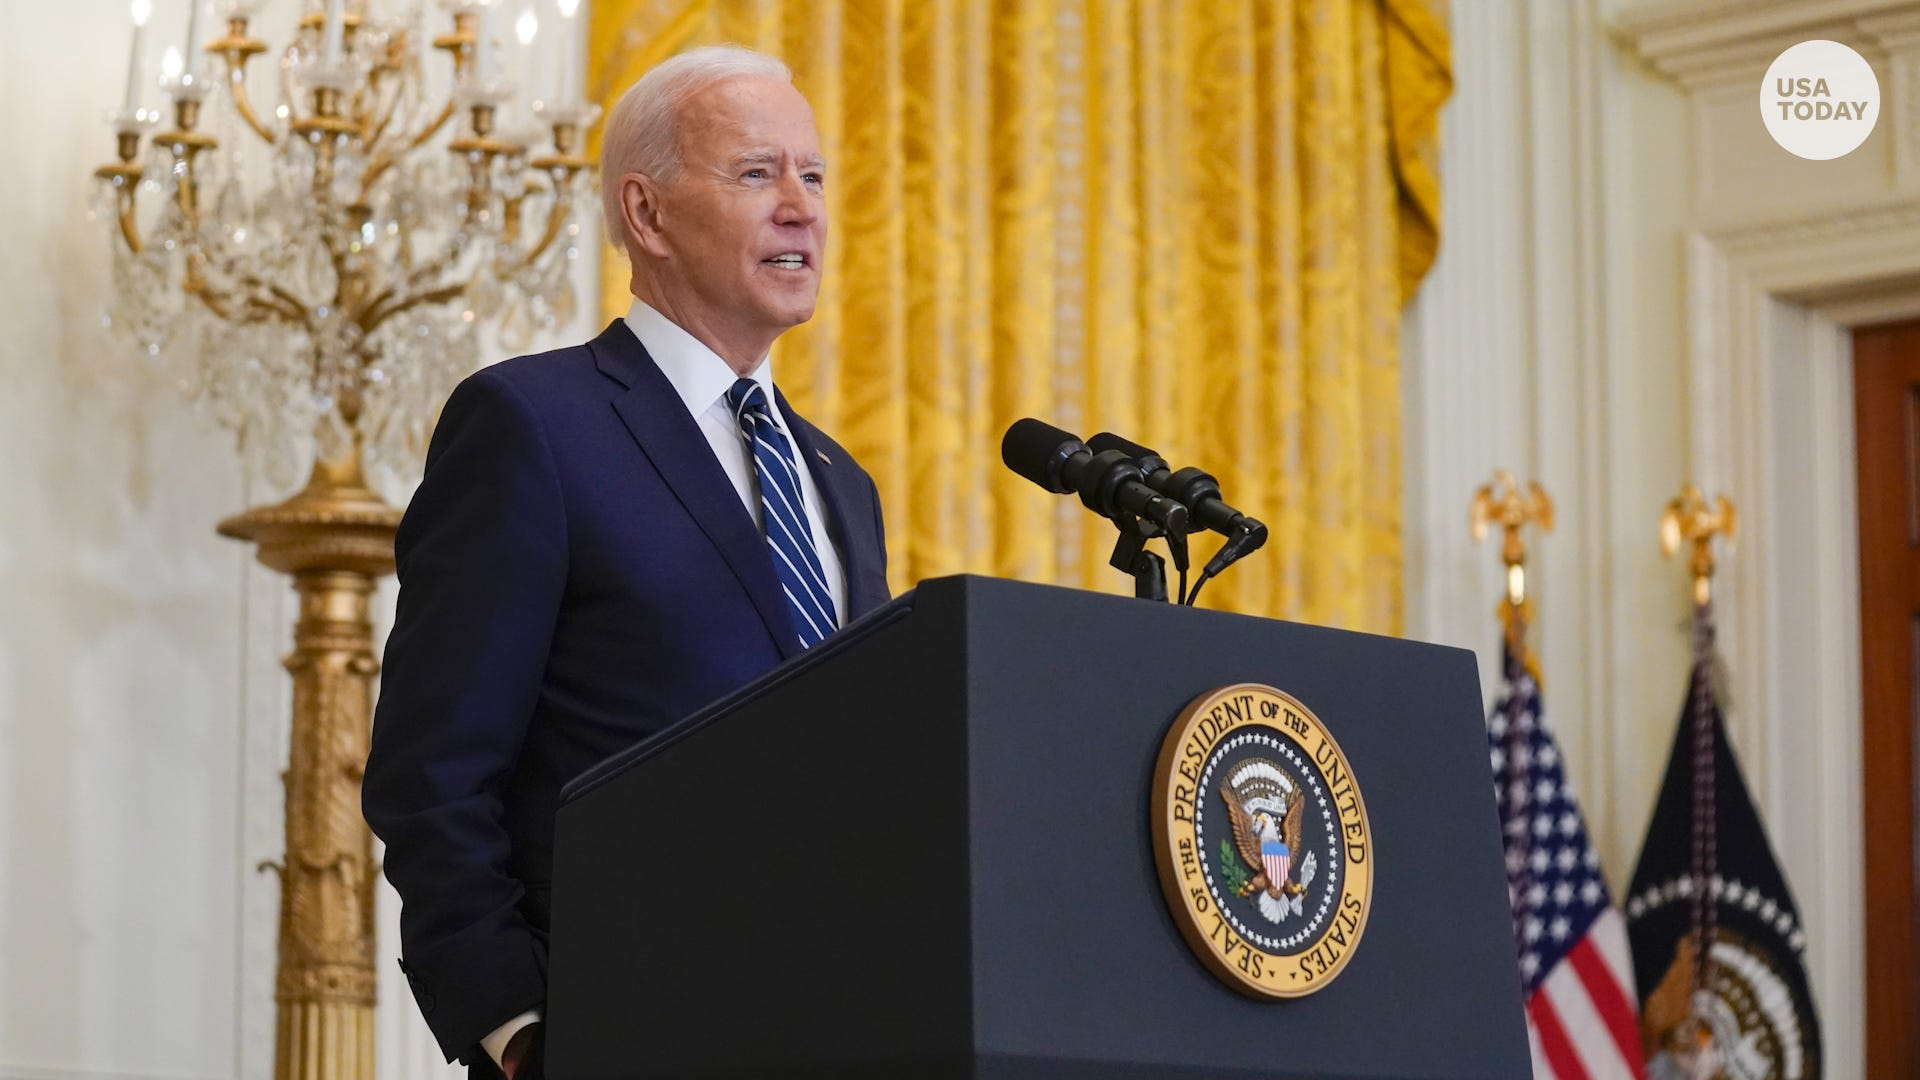 President Biden talks immigration, COVID-19 vaccinations and another White House run